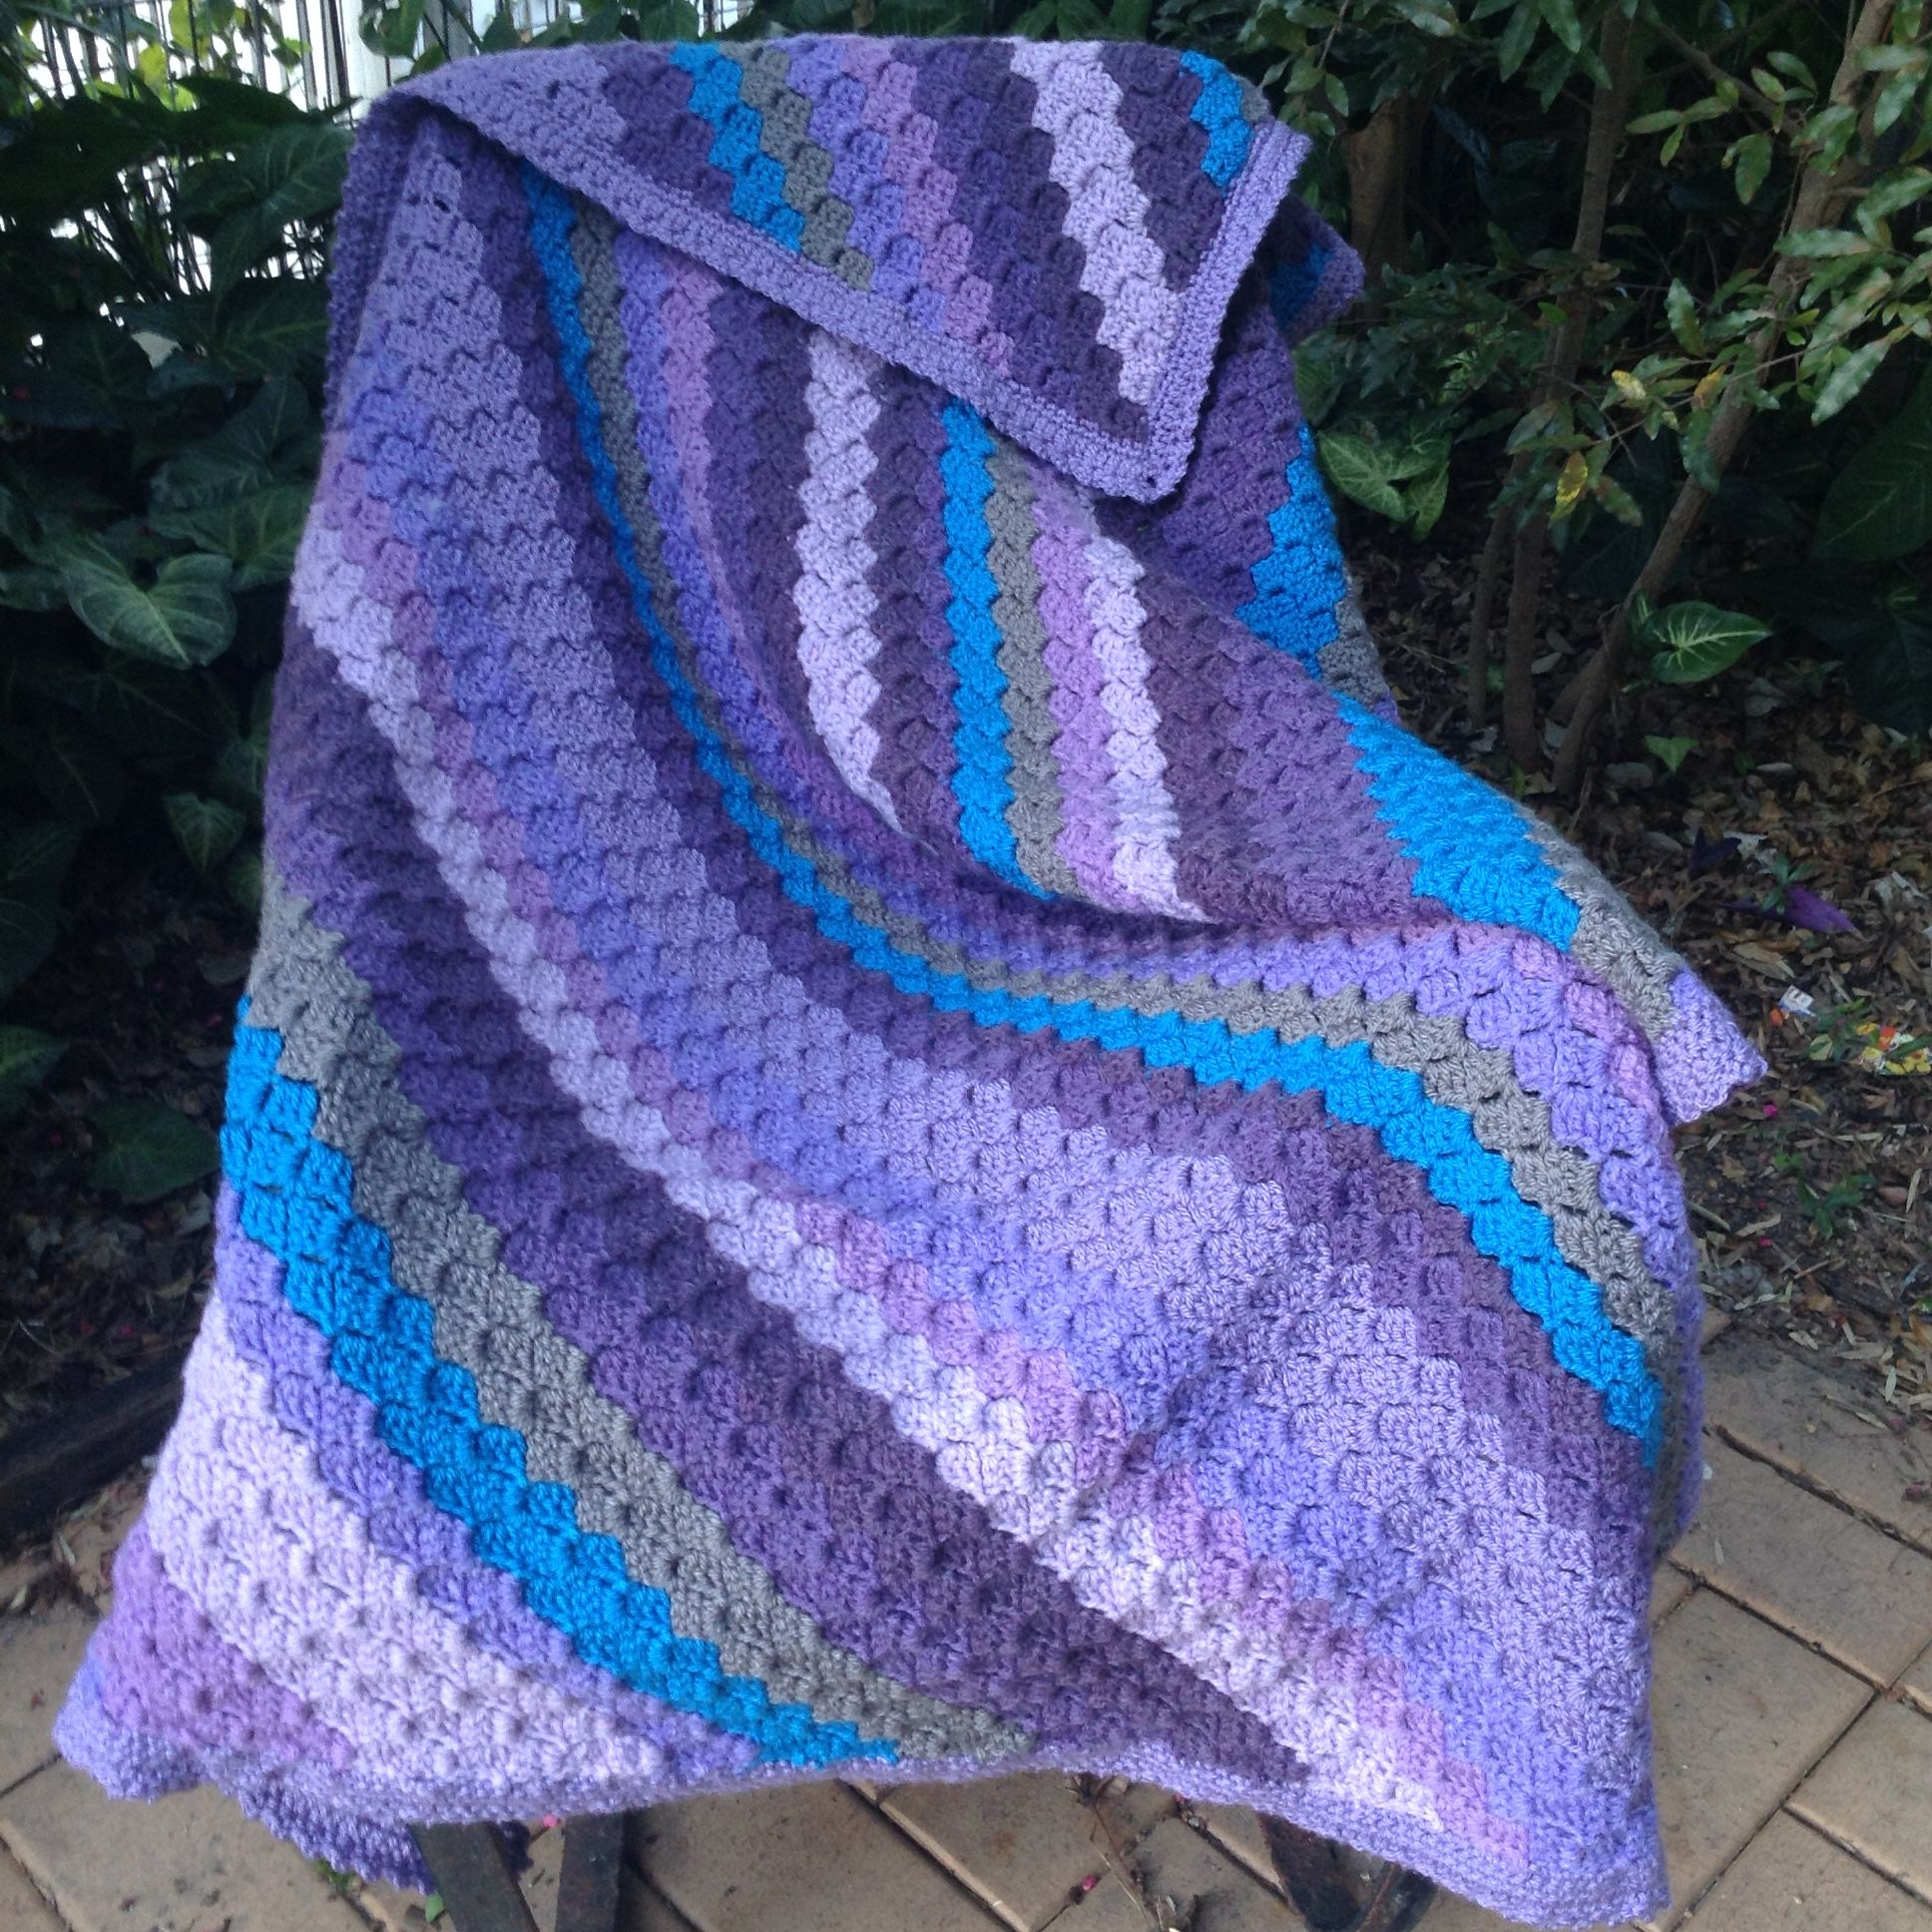 C2c kneerug made with lincraft cake in lovely lilac